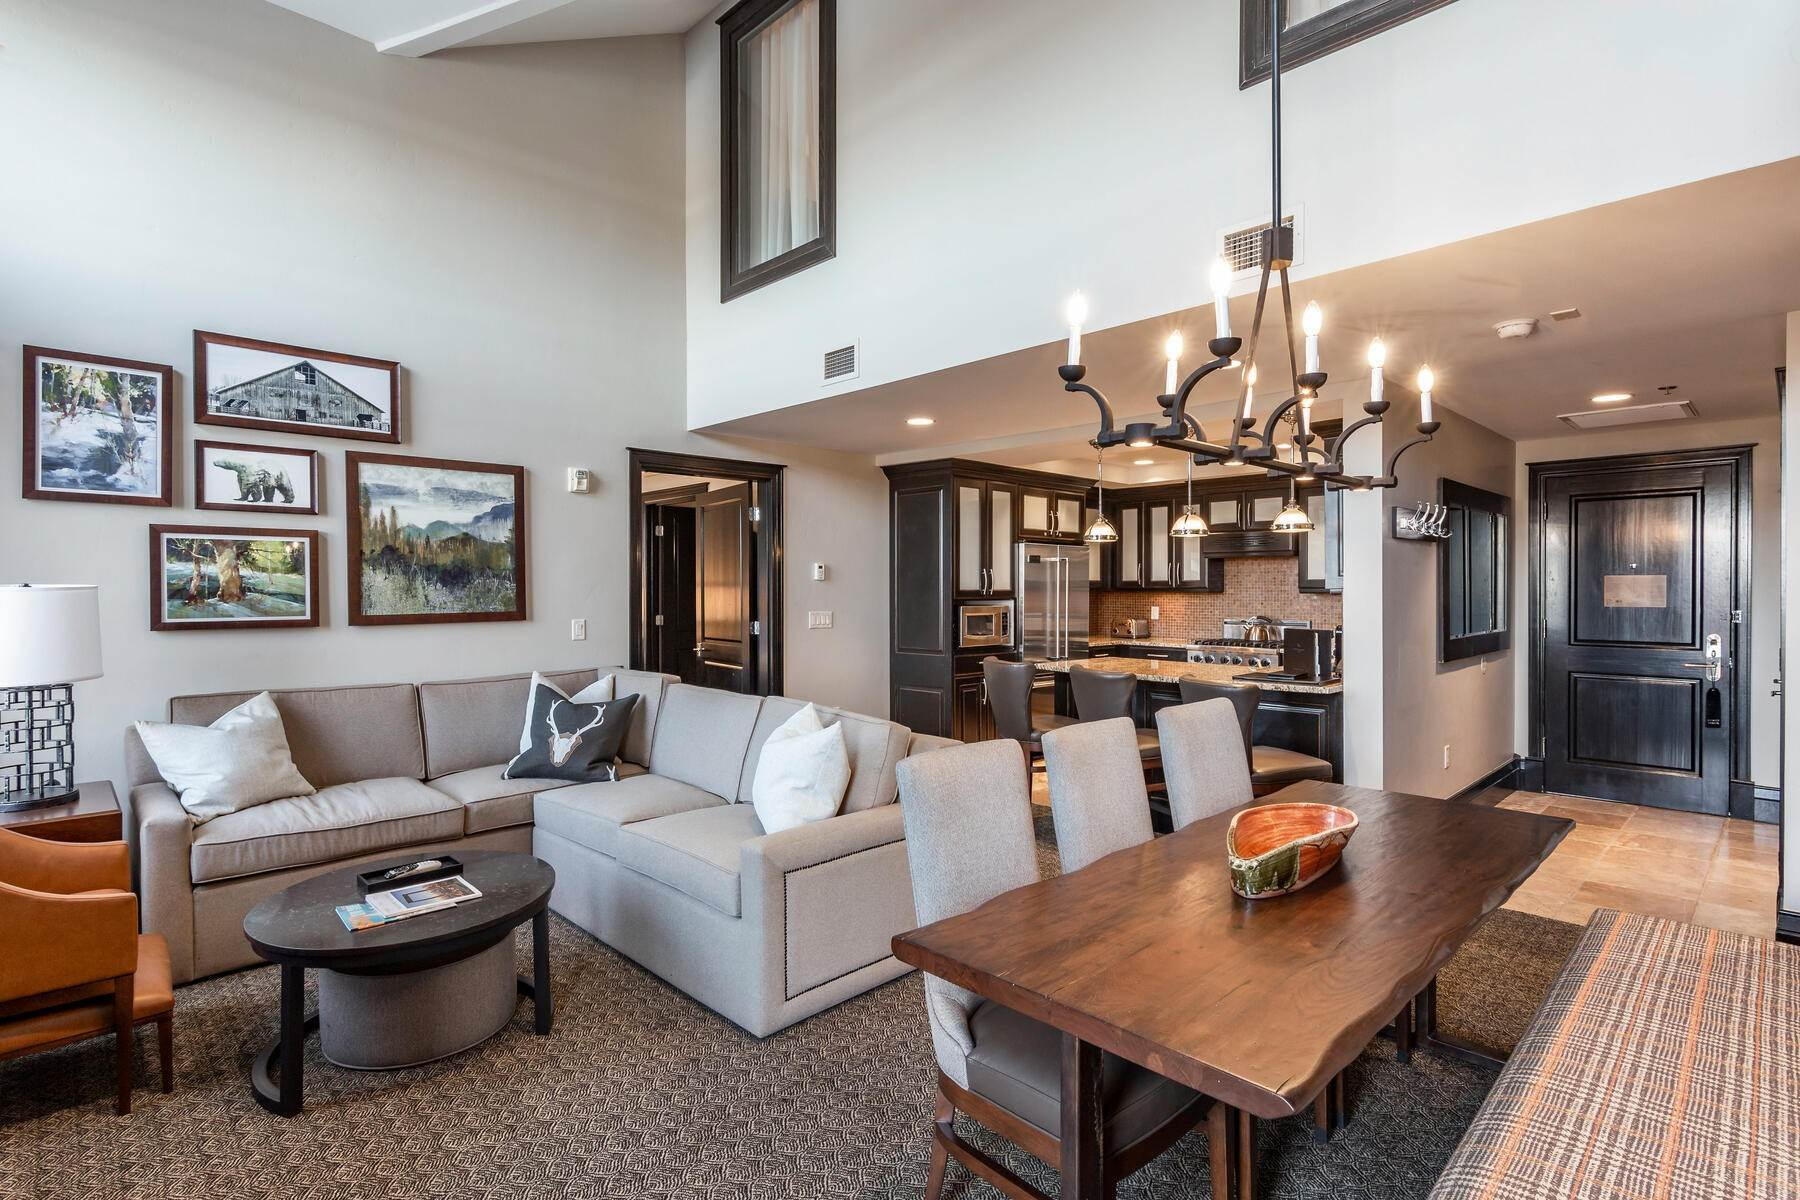 2. Condominiums for Sale at Only 4-Bedroom Available at Waldorf Astoria, Top Floor, Penthouse Unit 2100 W Frostwood Blvd, #7117 Park City, Utah 84098 United States